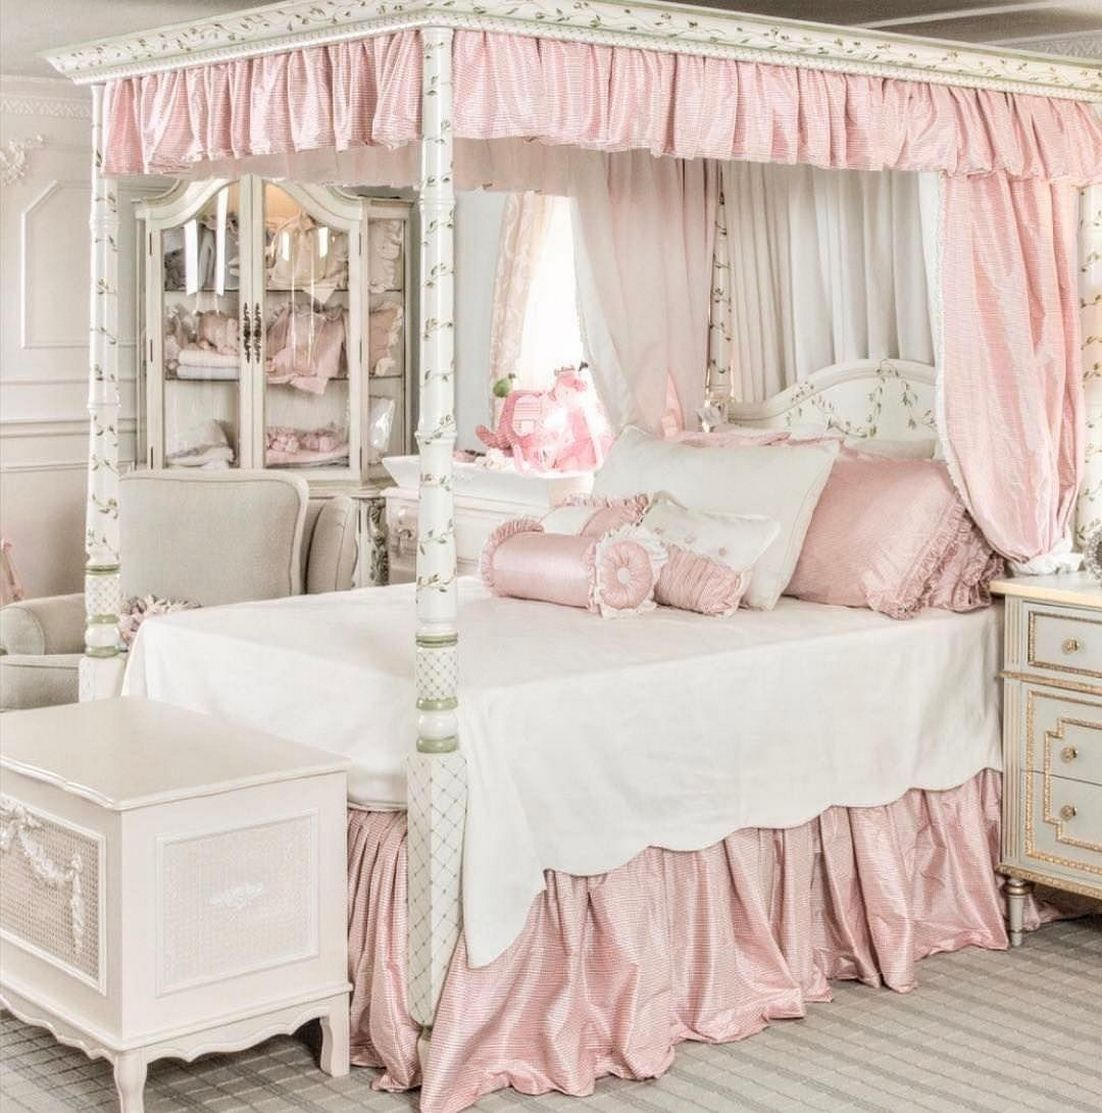 90 How To Completely Change Your Room To Vintage Princess Bed